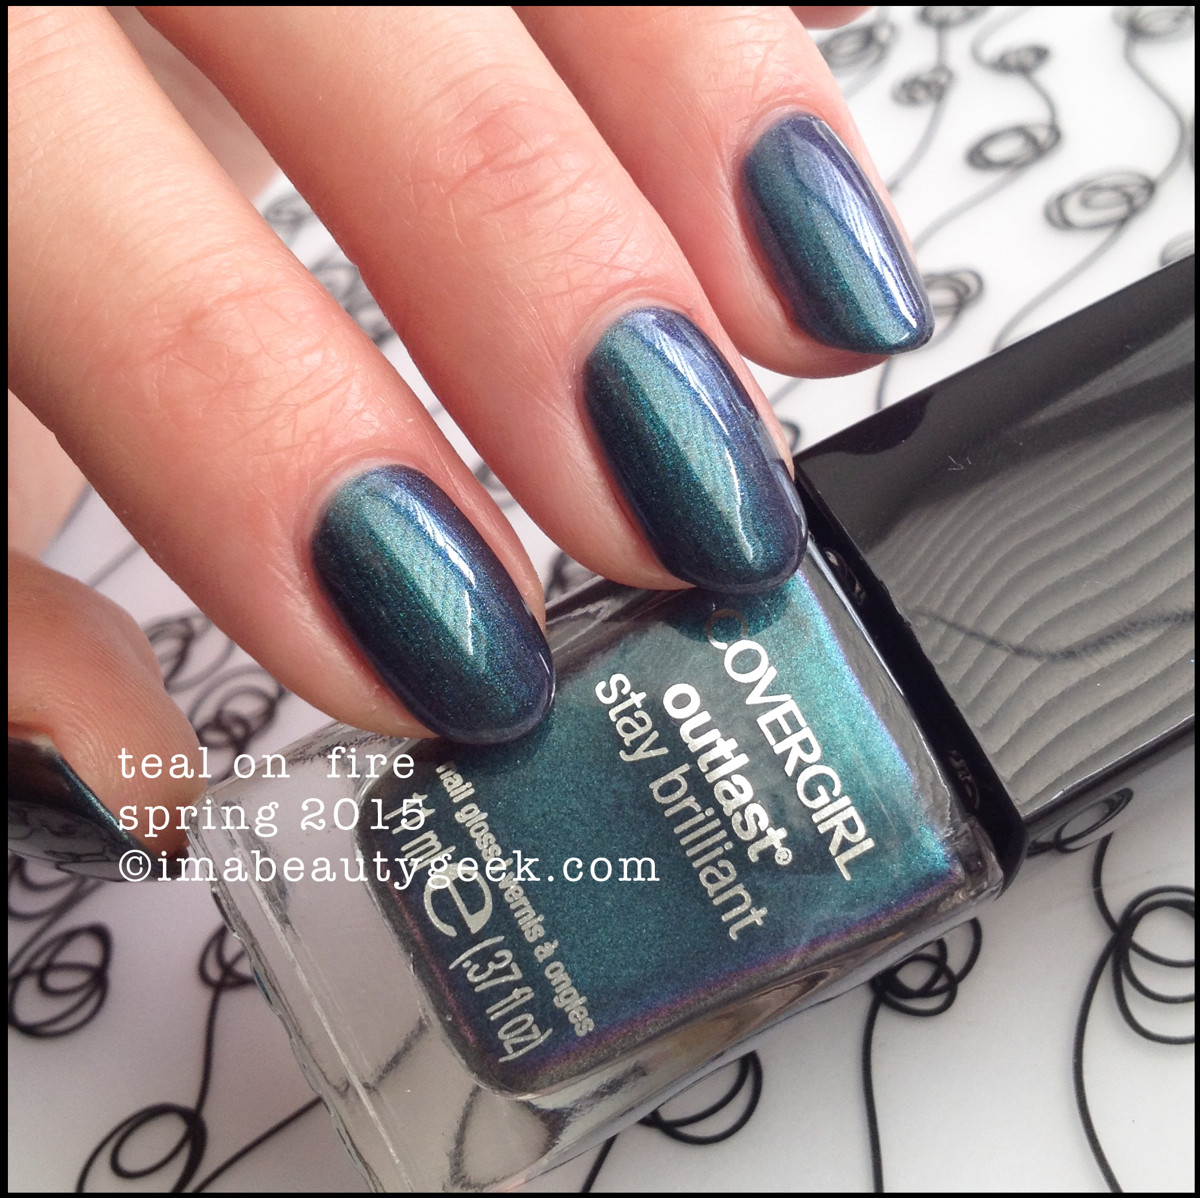 CoverGirl Nails Spring 2015_CoverGirl Teal on Fire Outlast